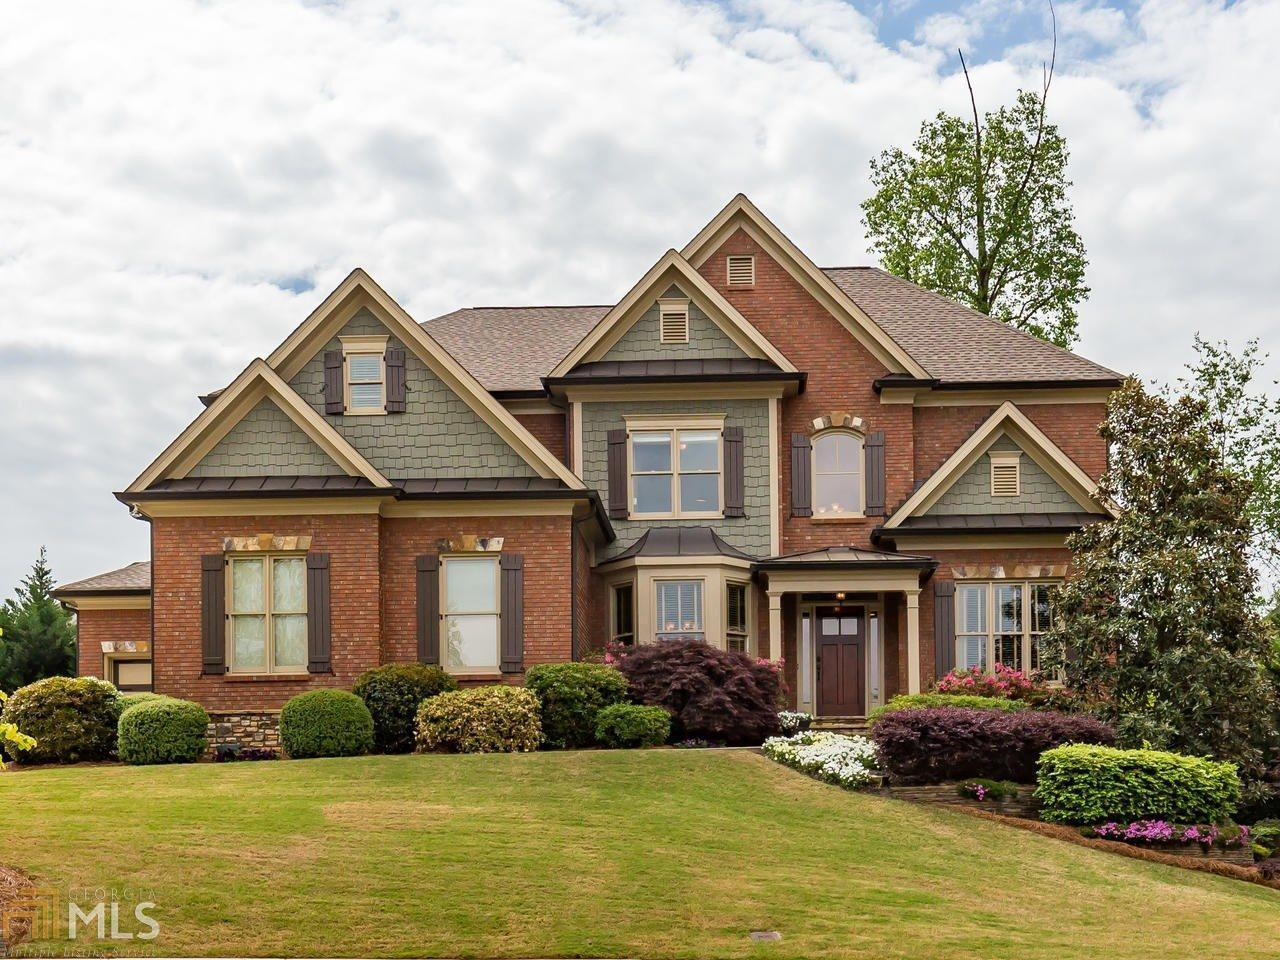 2092 Greenway Mill Ct, Snellville, GA 30078 | MLS# 8172904 | Redfin